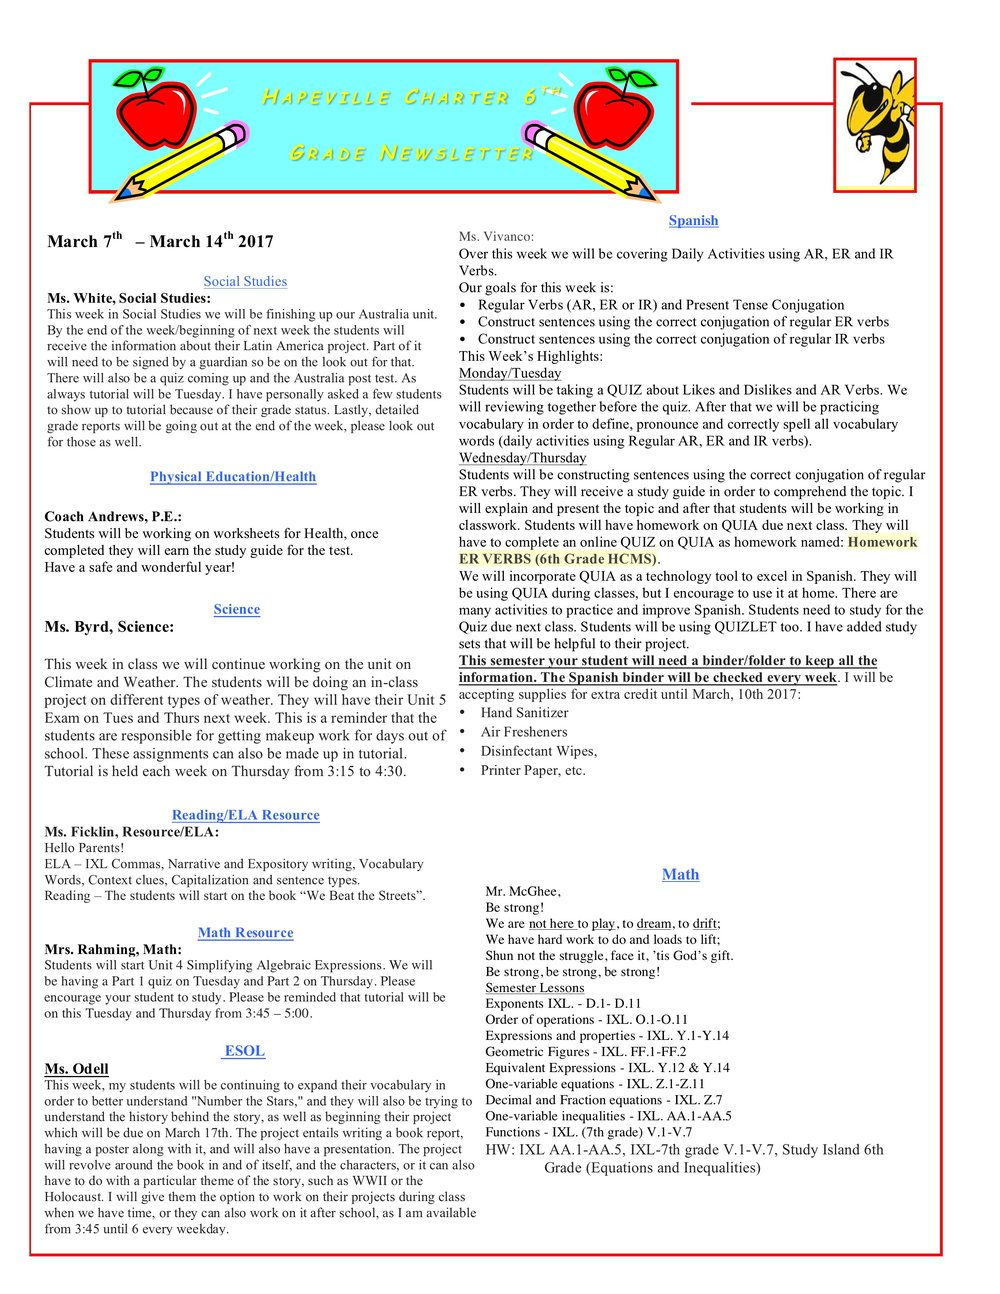 Newsletter Image6th Grade Newsletter 3-7-2017.jpeg